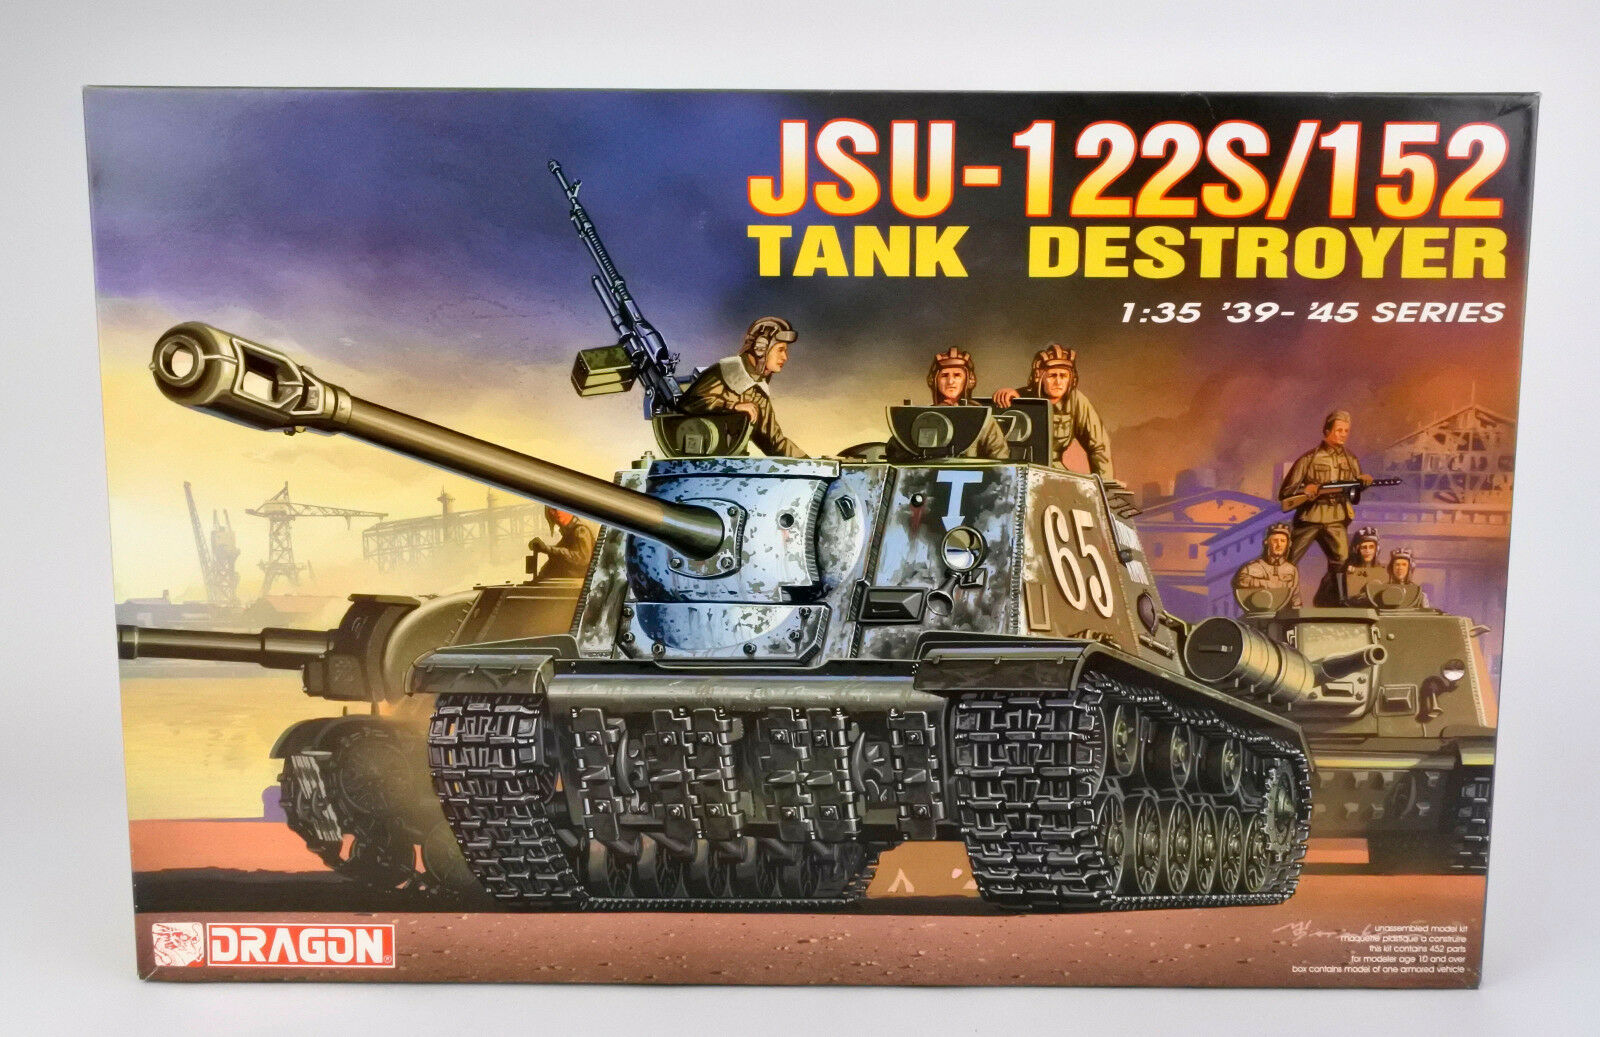 DRAGON 1 35 6047 RUSSIAN JSU-122S 152 TANK DESTROYER MODEL KIT